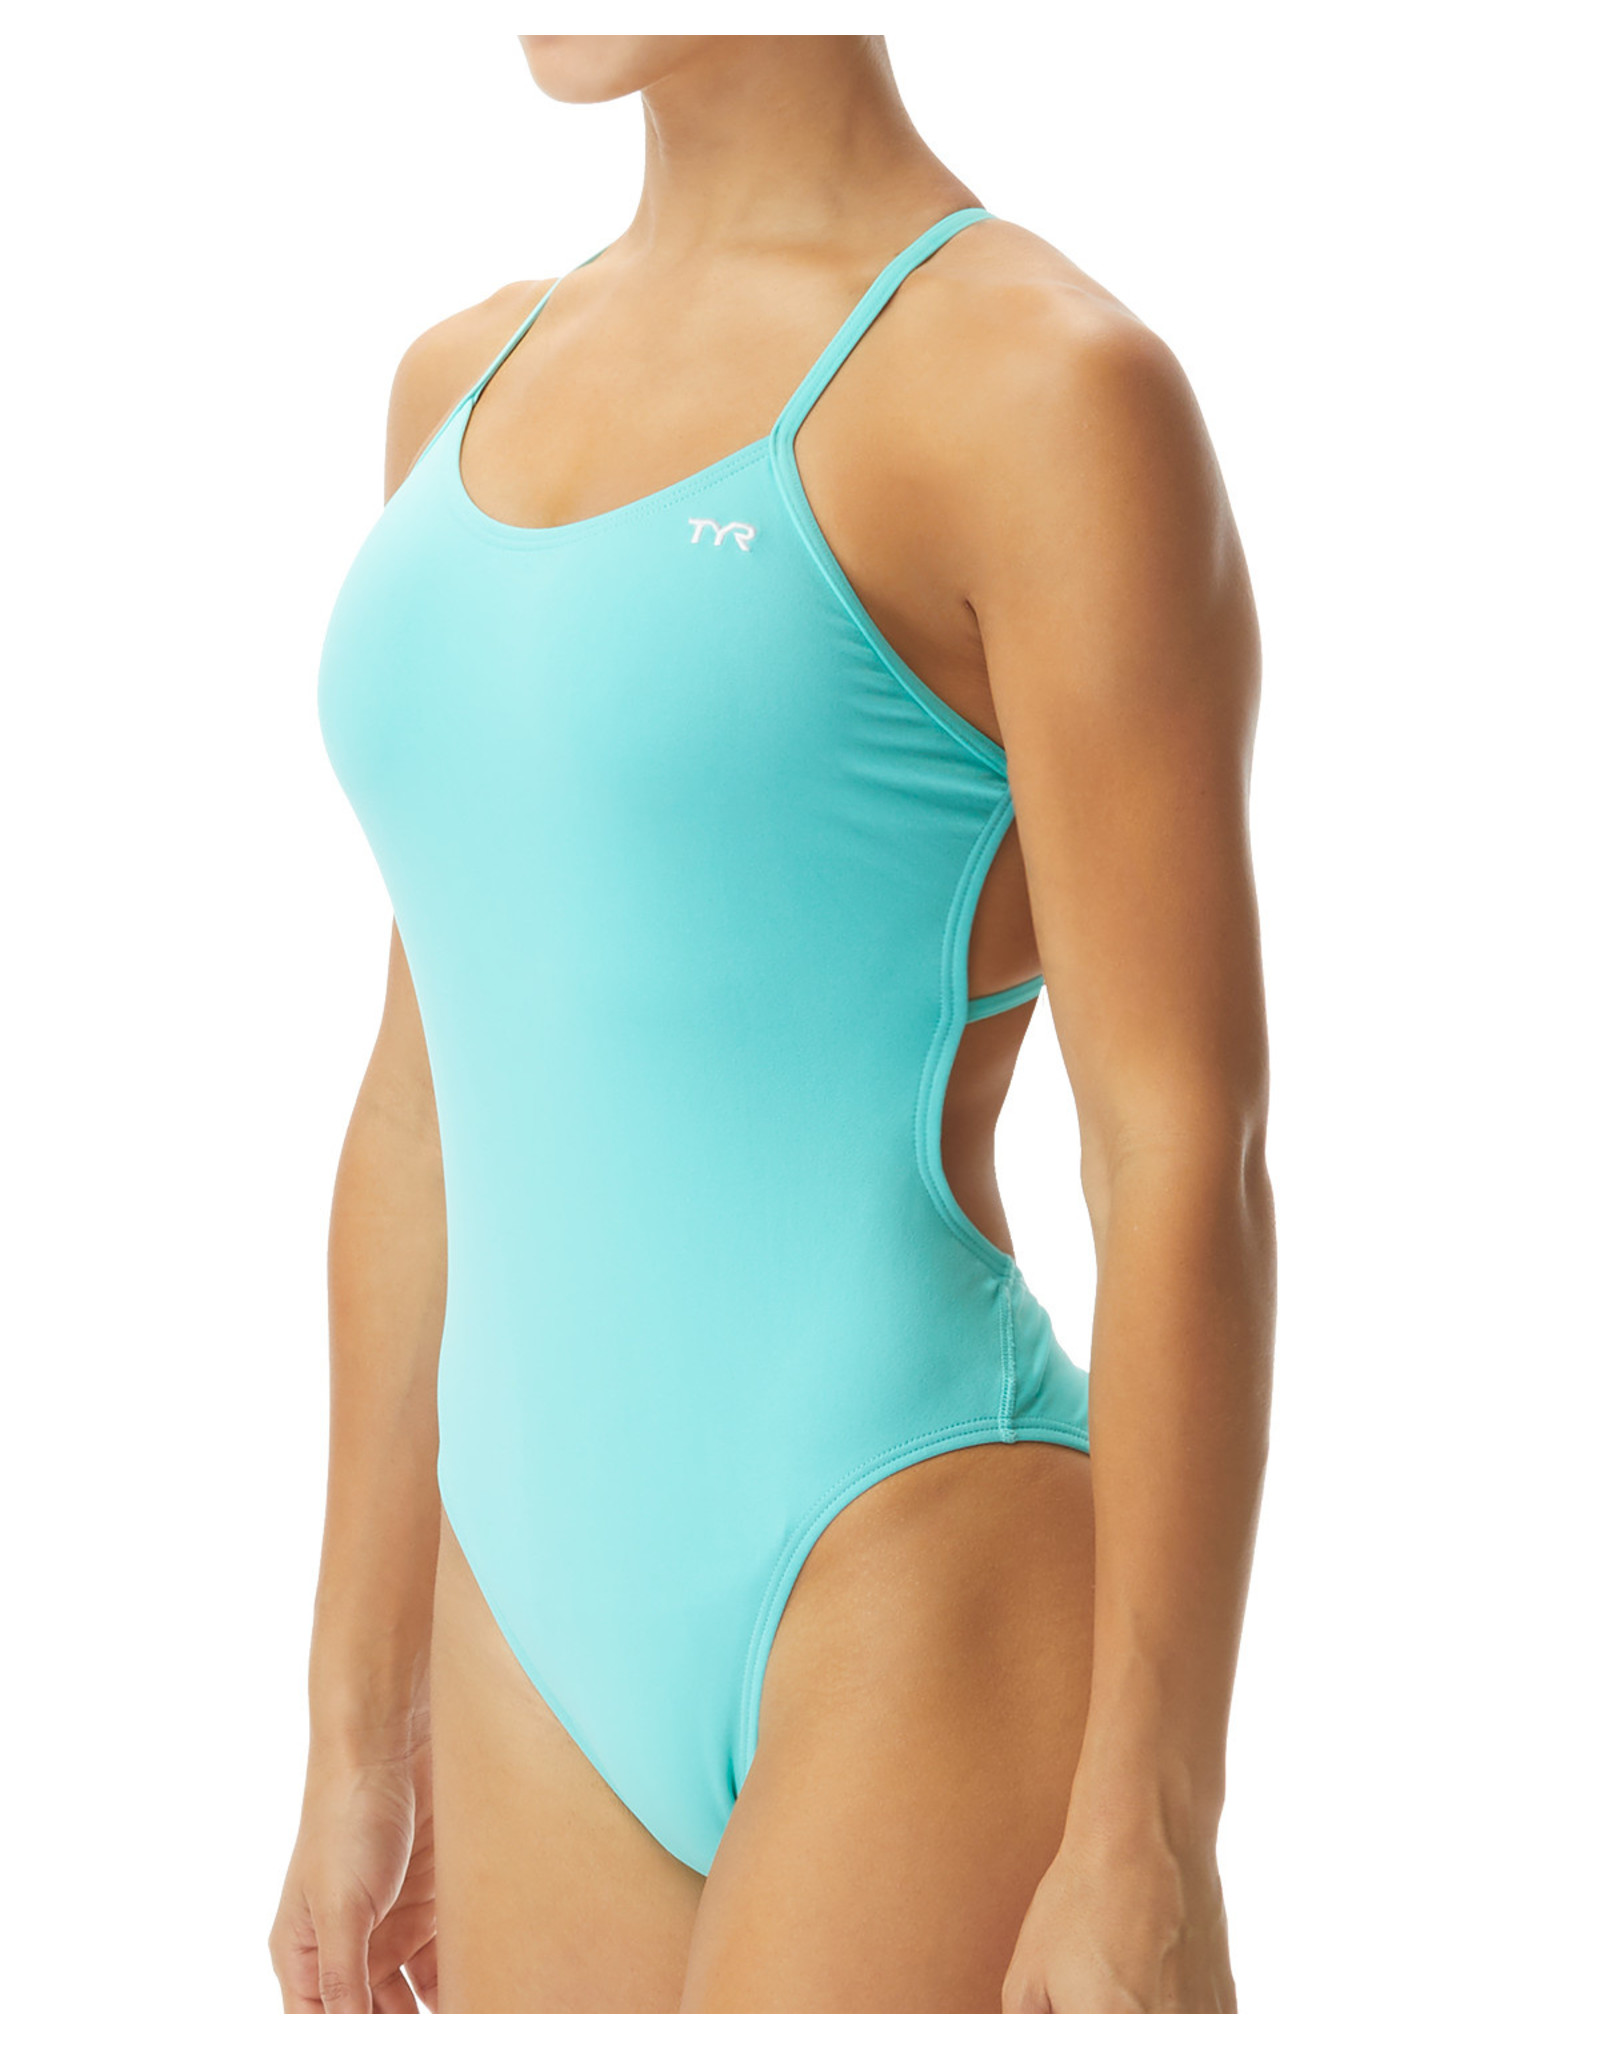 TYR TYR SOLID TETRAFIT SUIT